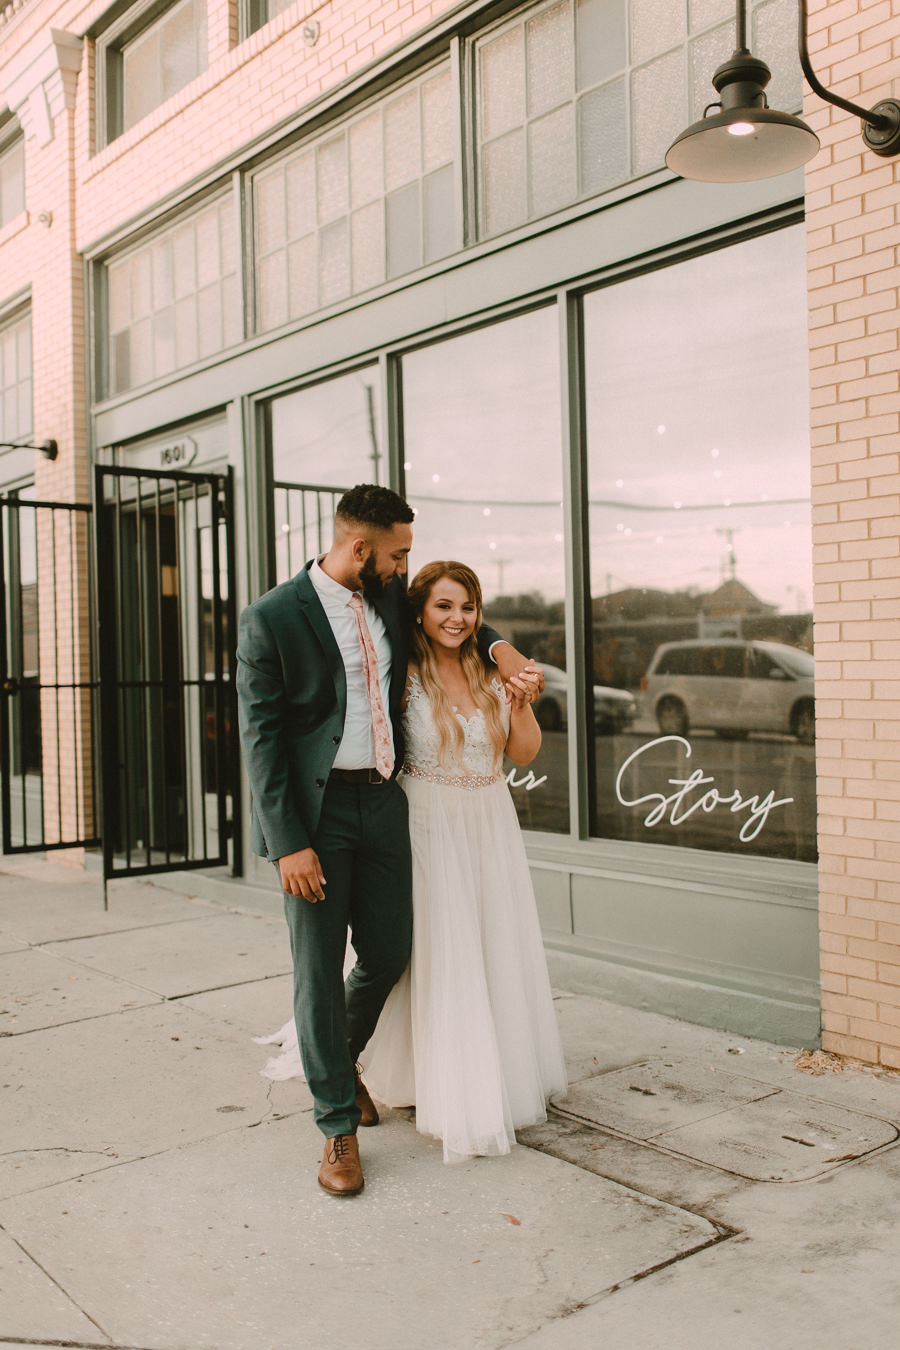 VeronicaandGarrett's Industrial Cavu Tampa Heights Wedding BHLDN gown Salt Block Hospitality Fancy Free Nursery Foundation Coffee-232.jpg